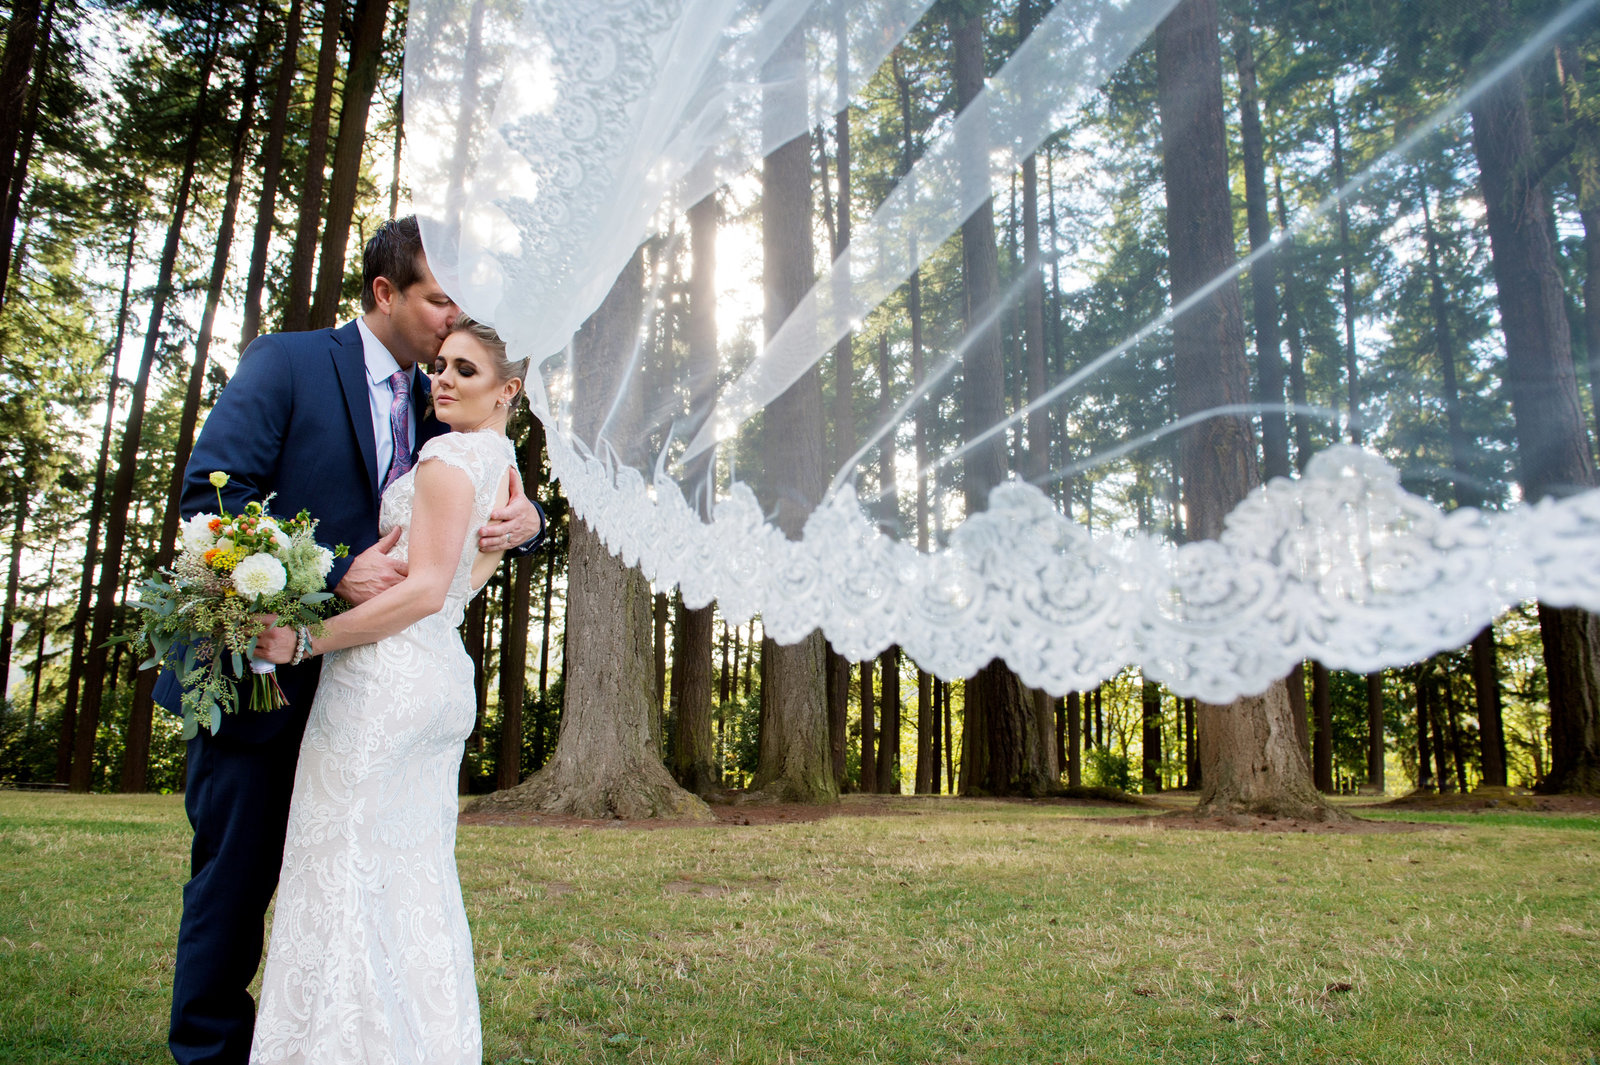 bride's veil flies in wind